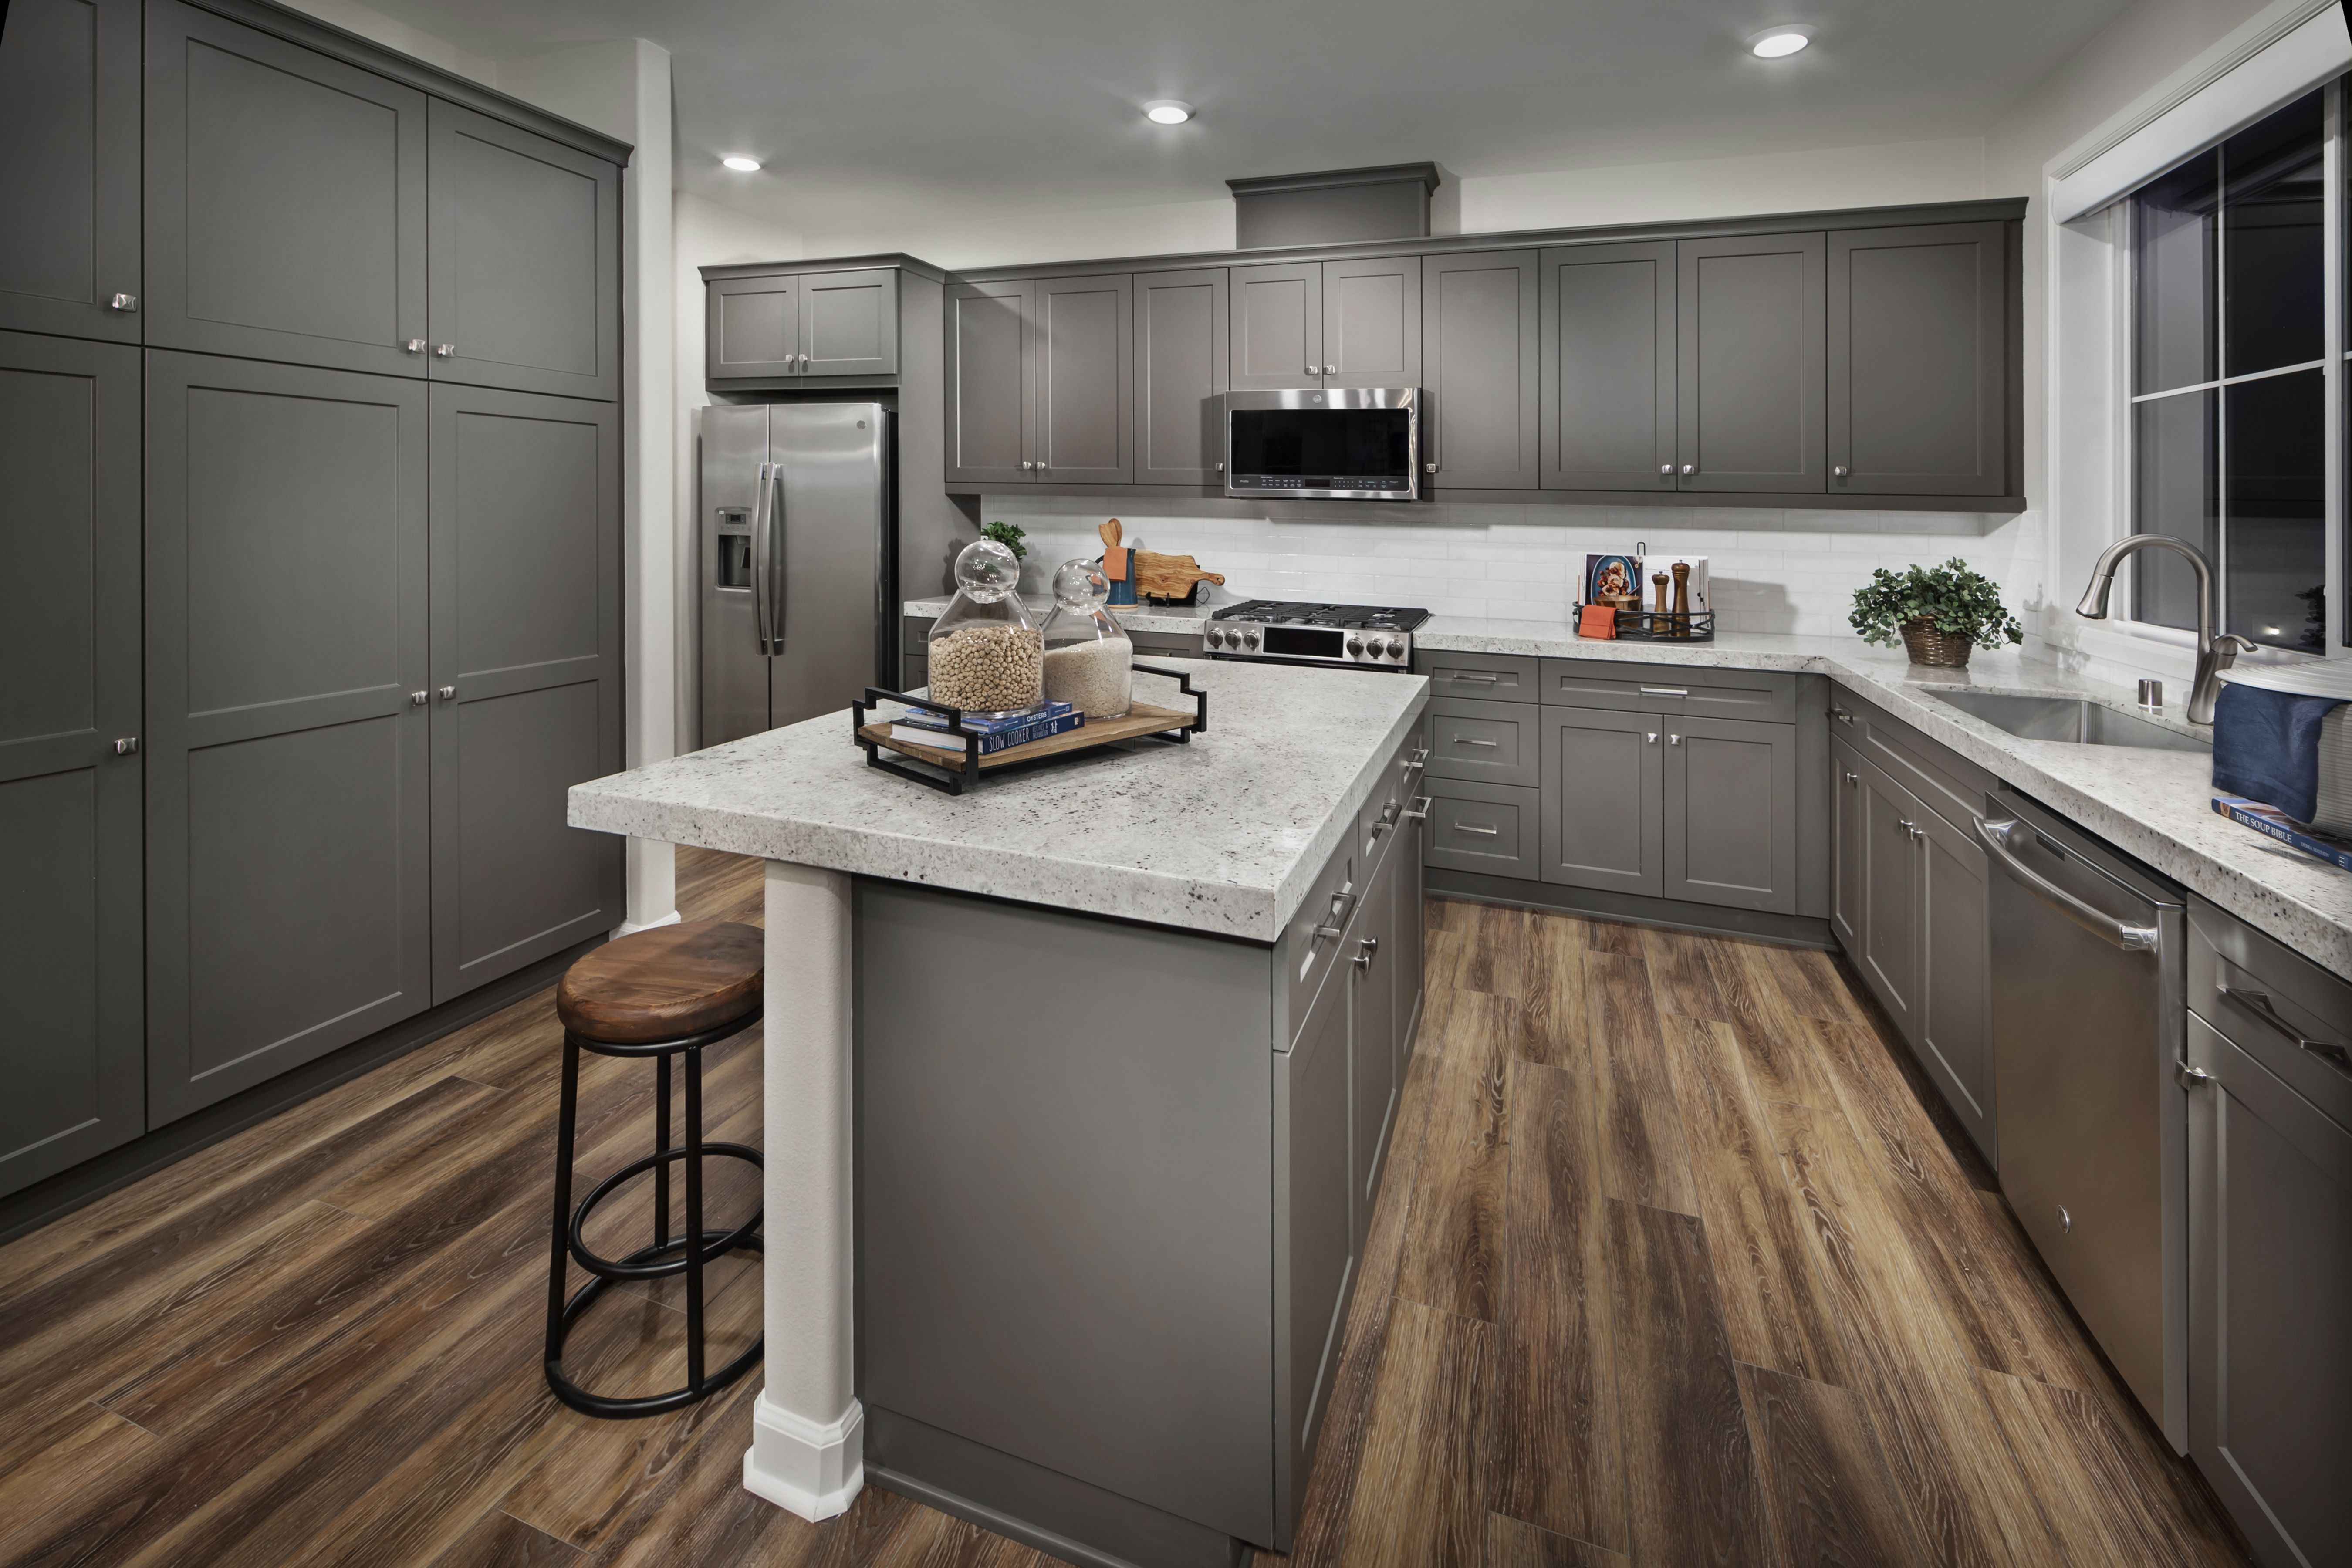 Grey Kitchen Cabinetry Type Of Vibes What Are Your Thoughts Magnolia Lomavista Yorbalinda Kitchen Kitchendecor Kit New Homes For Sale New Homes Lennar